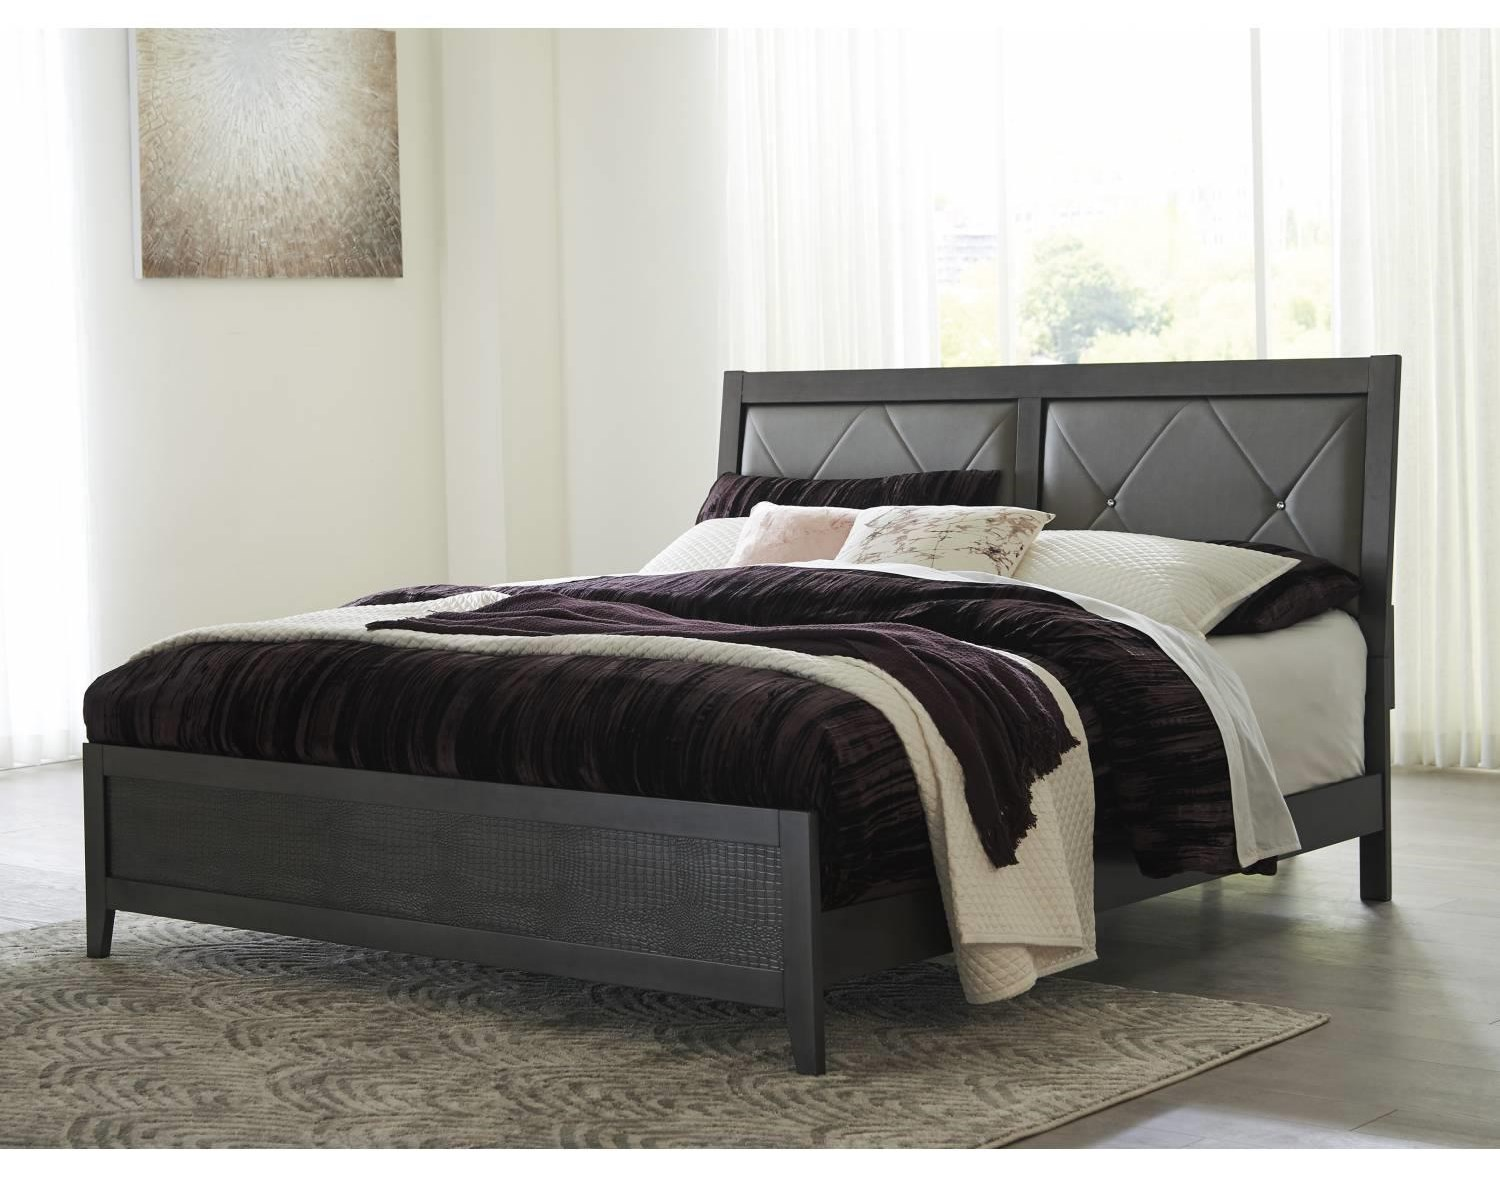 Delmont Delmont Queen Bed by Ashley at Morris Home